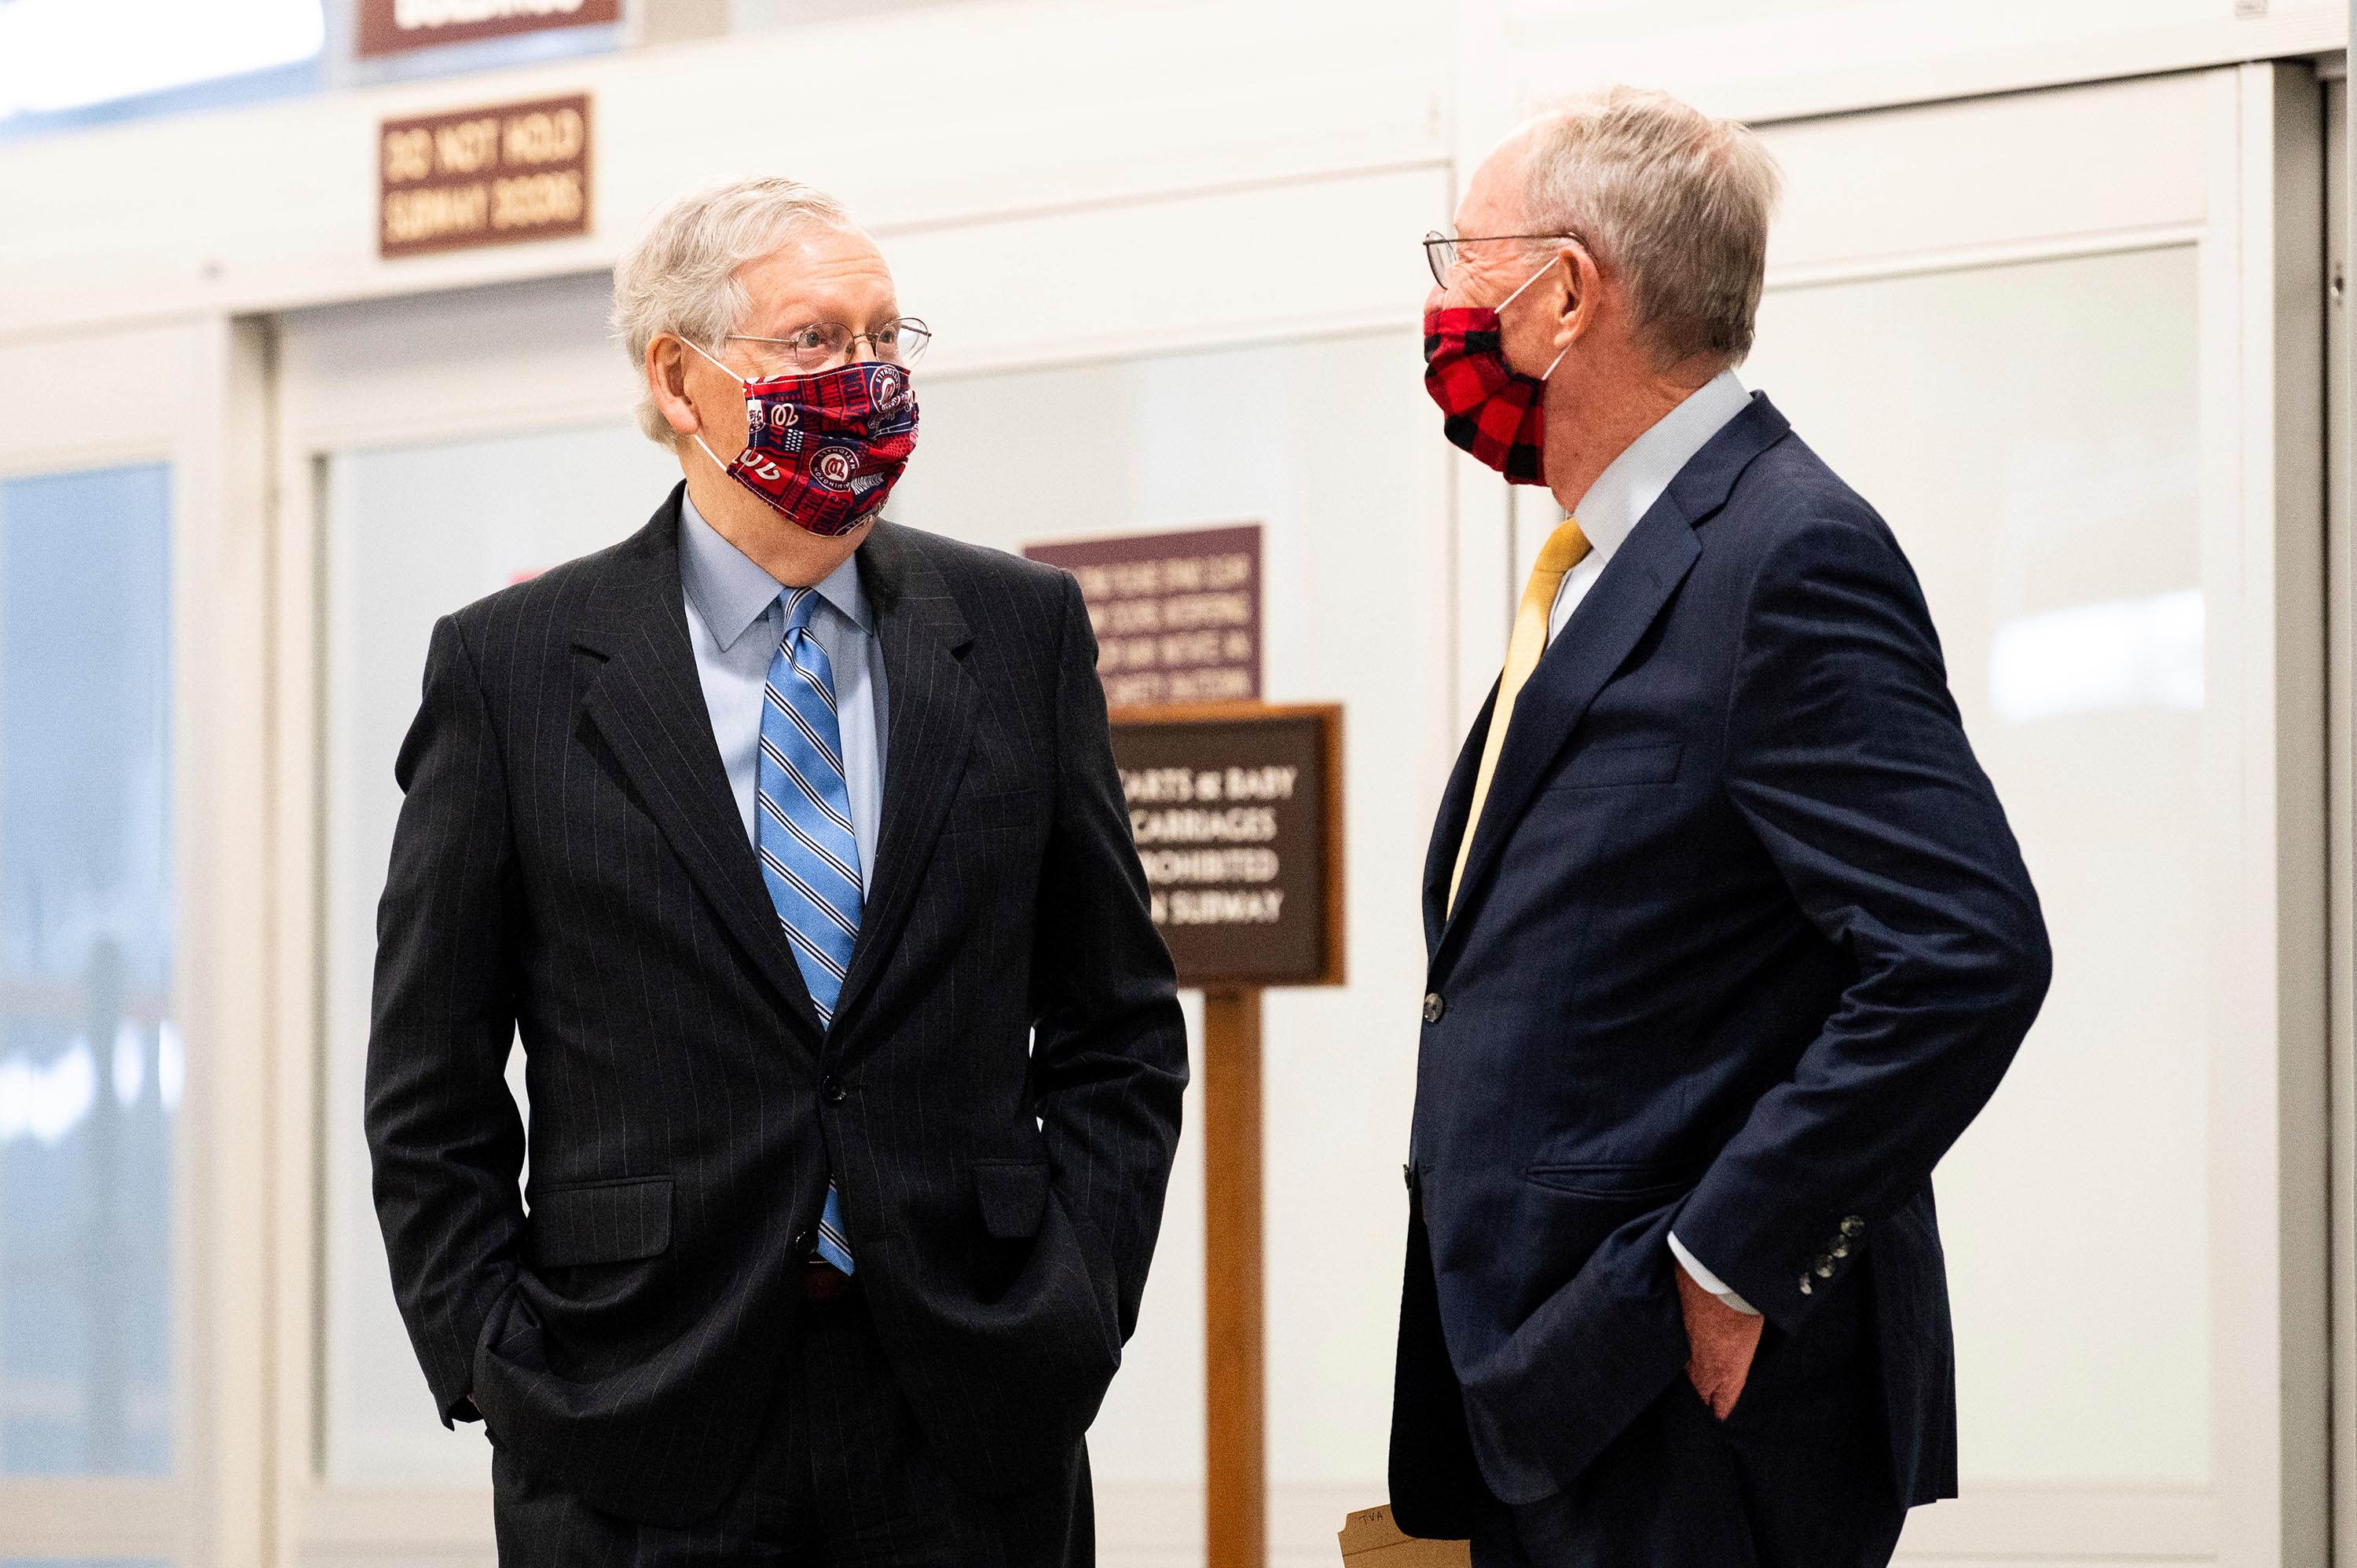 McConnell chokes up in emotional tribute to retiring Tennessee senator